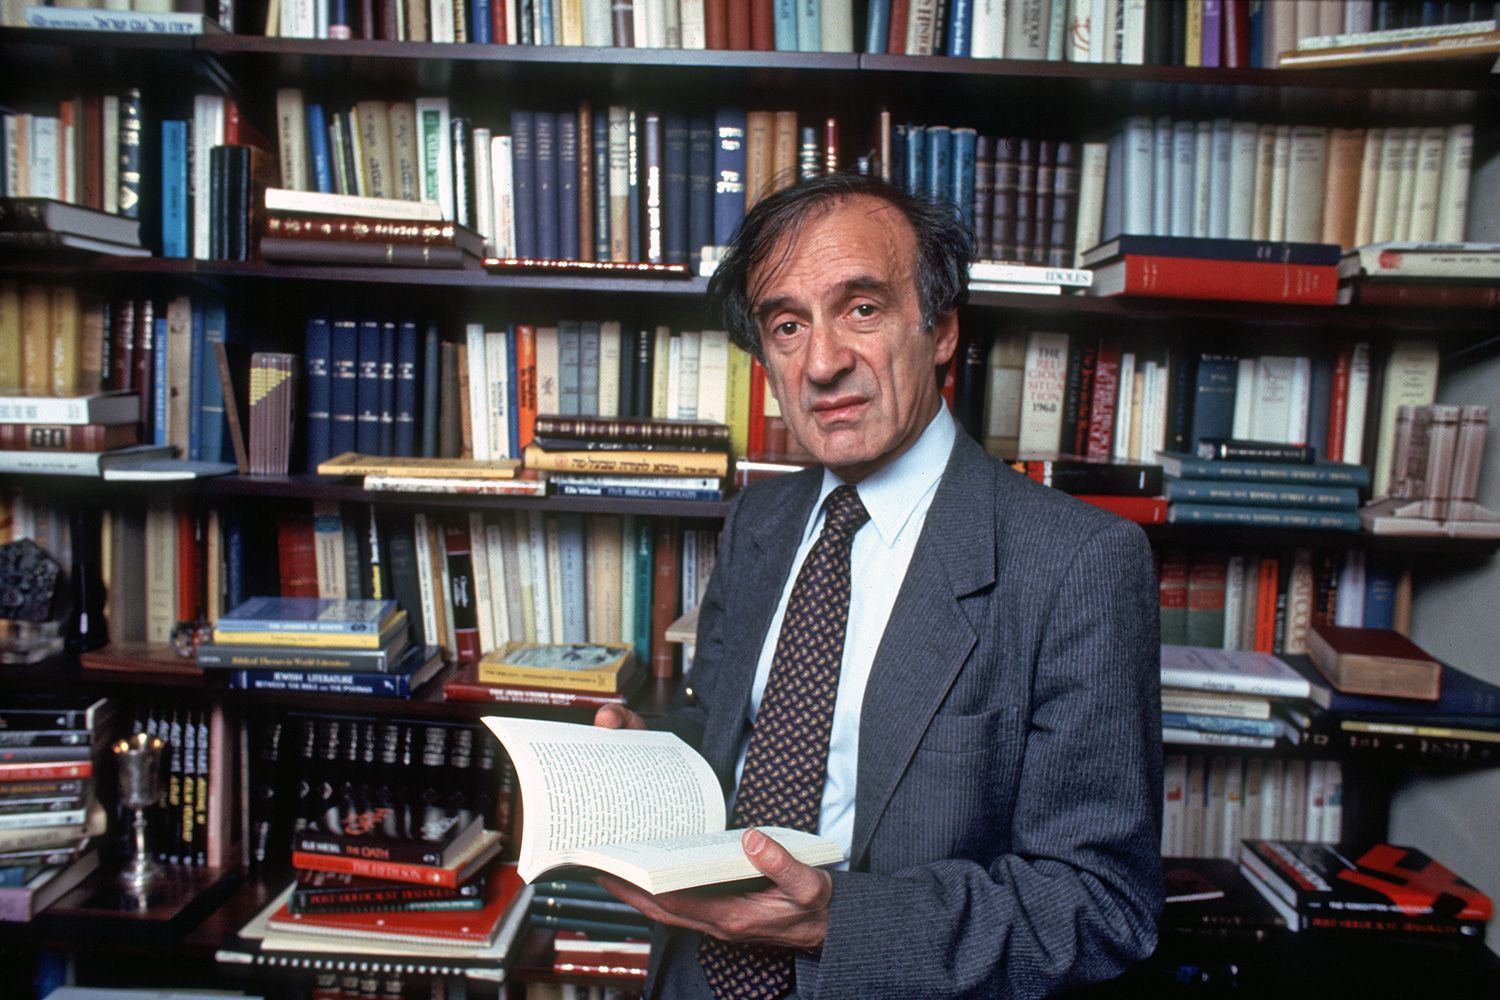 Night A Novel By Elie Wiesel Quotations